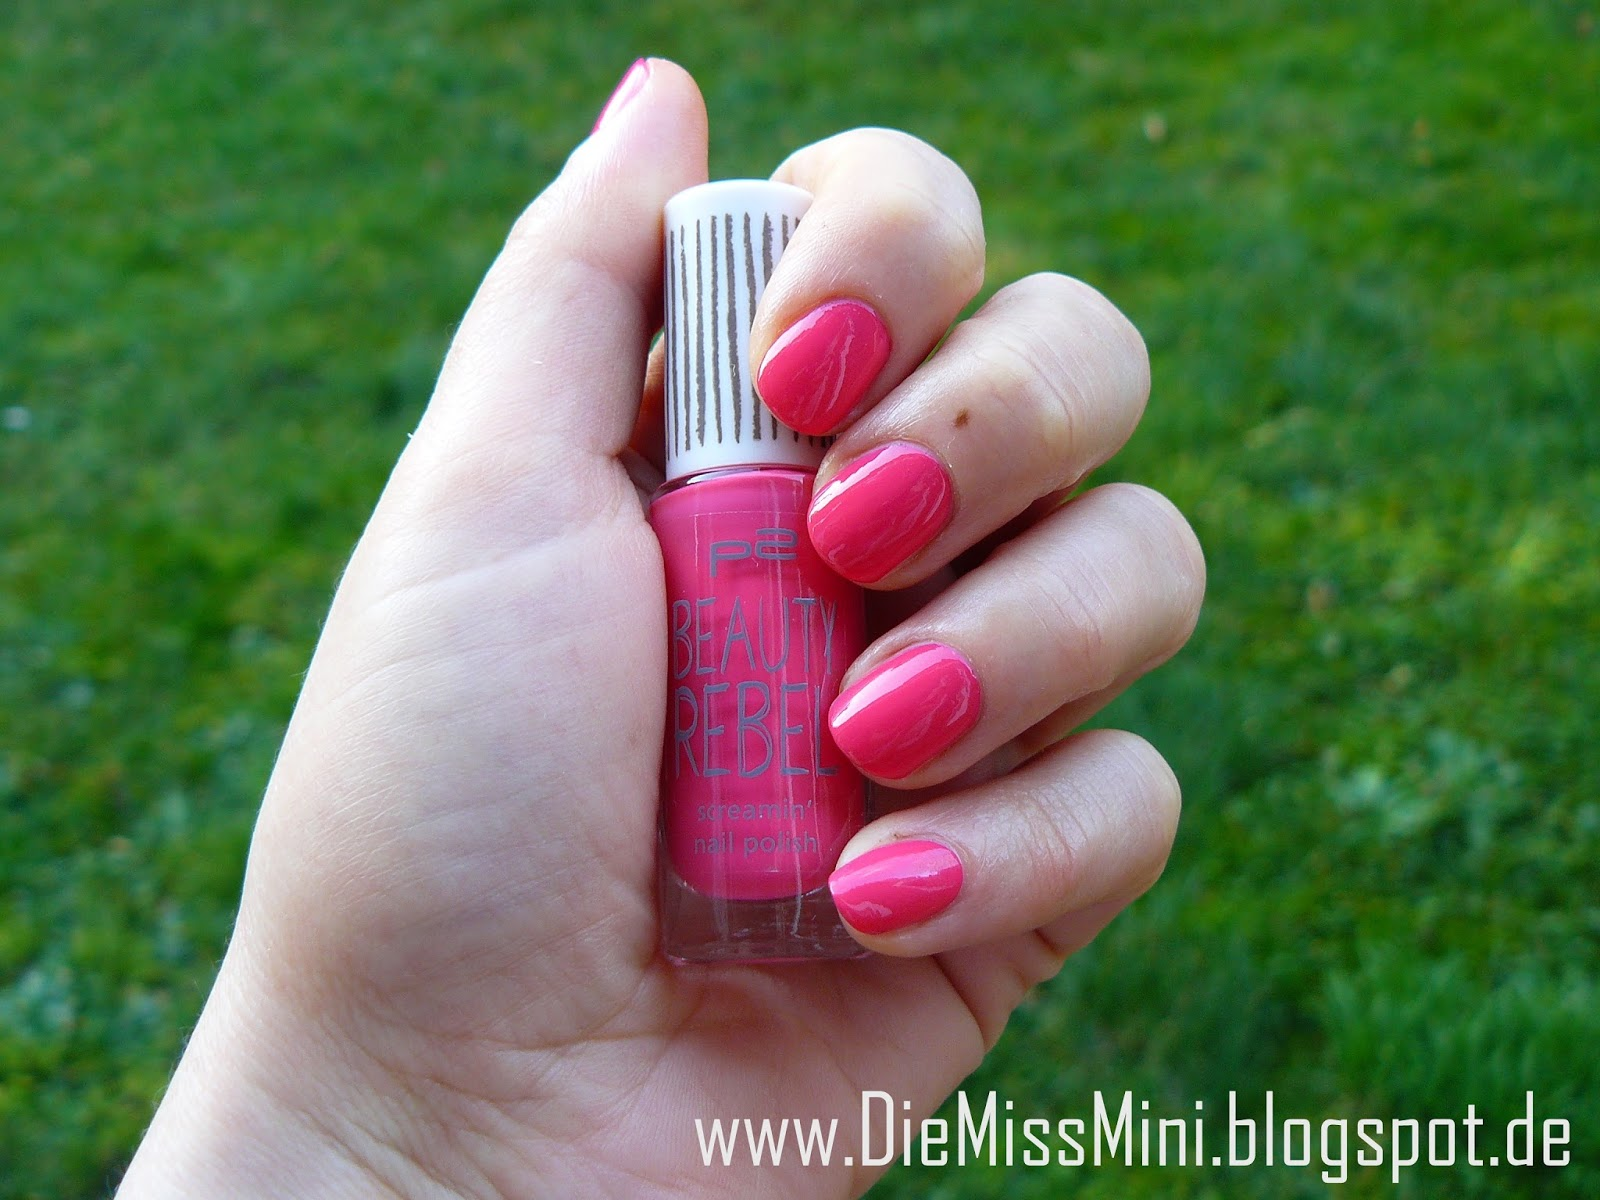 http://diemissmini.blogspot.de/2014/01/nagellack-p2-beauty-rebel-screamin-nail.html